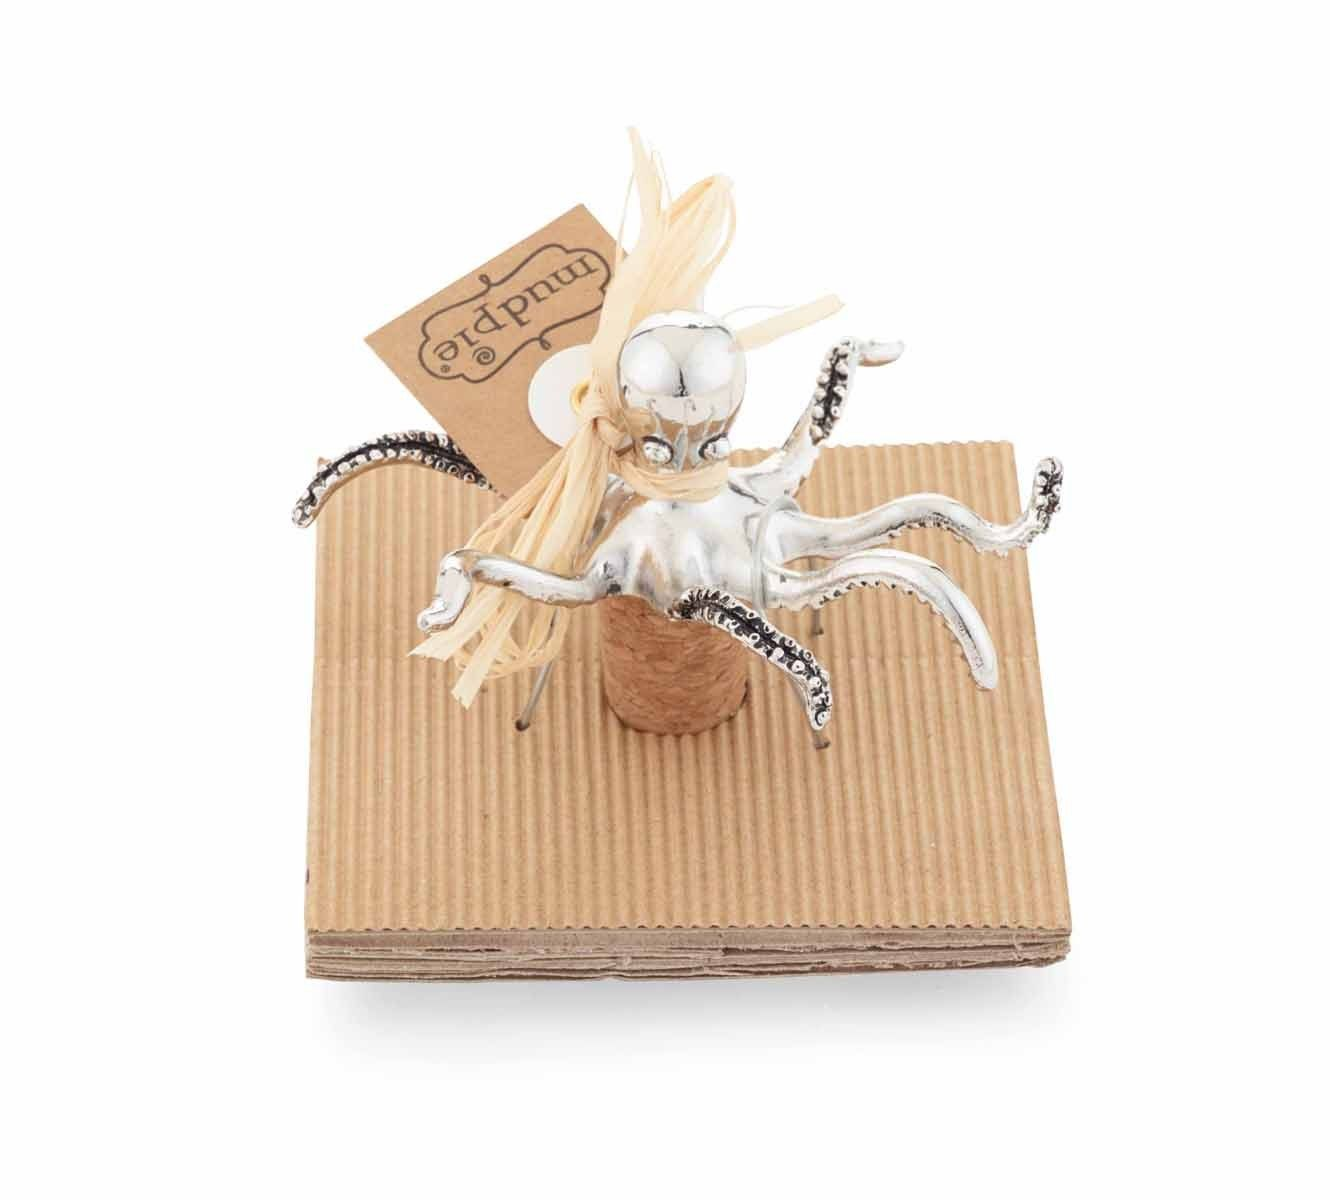 mud pie octopus bottle topper - Graceful metal octopus floats atop cork bottle stopper. Comes on rolled corrugate card.